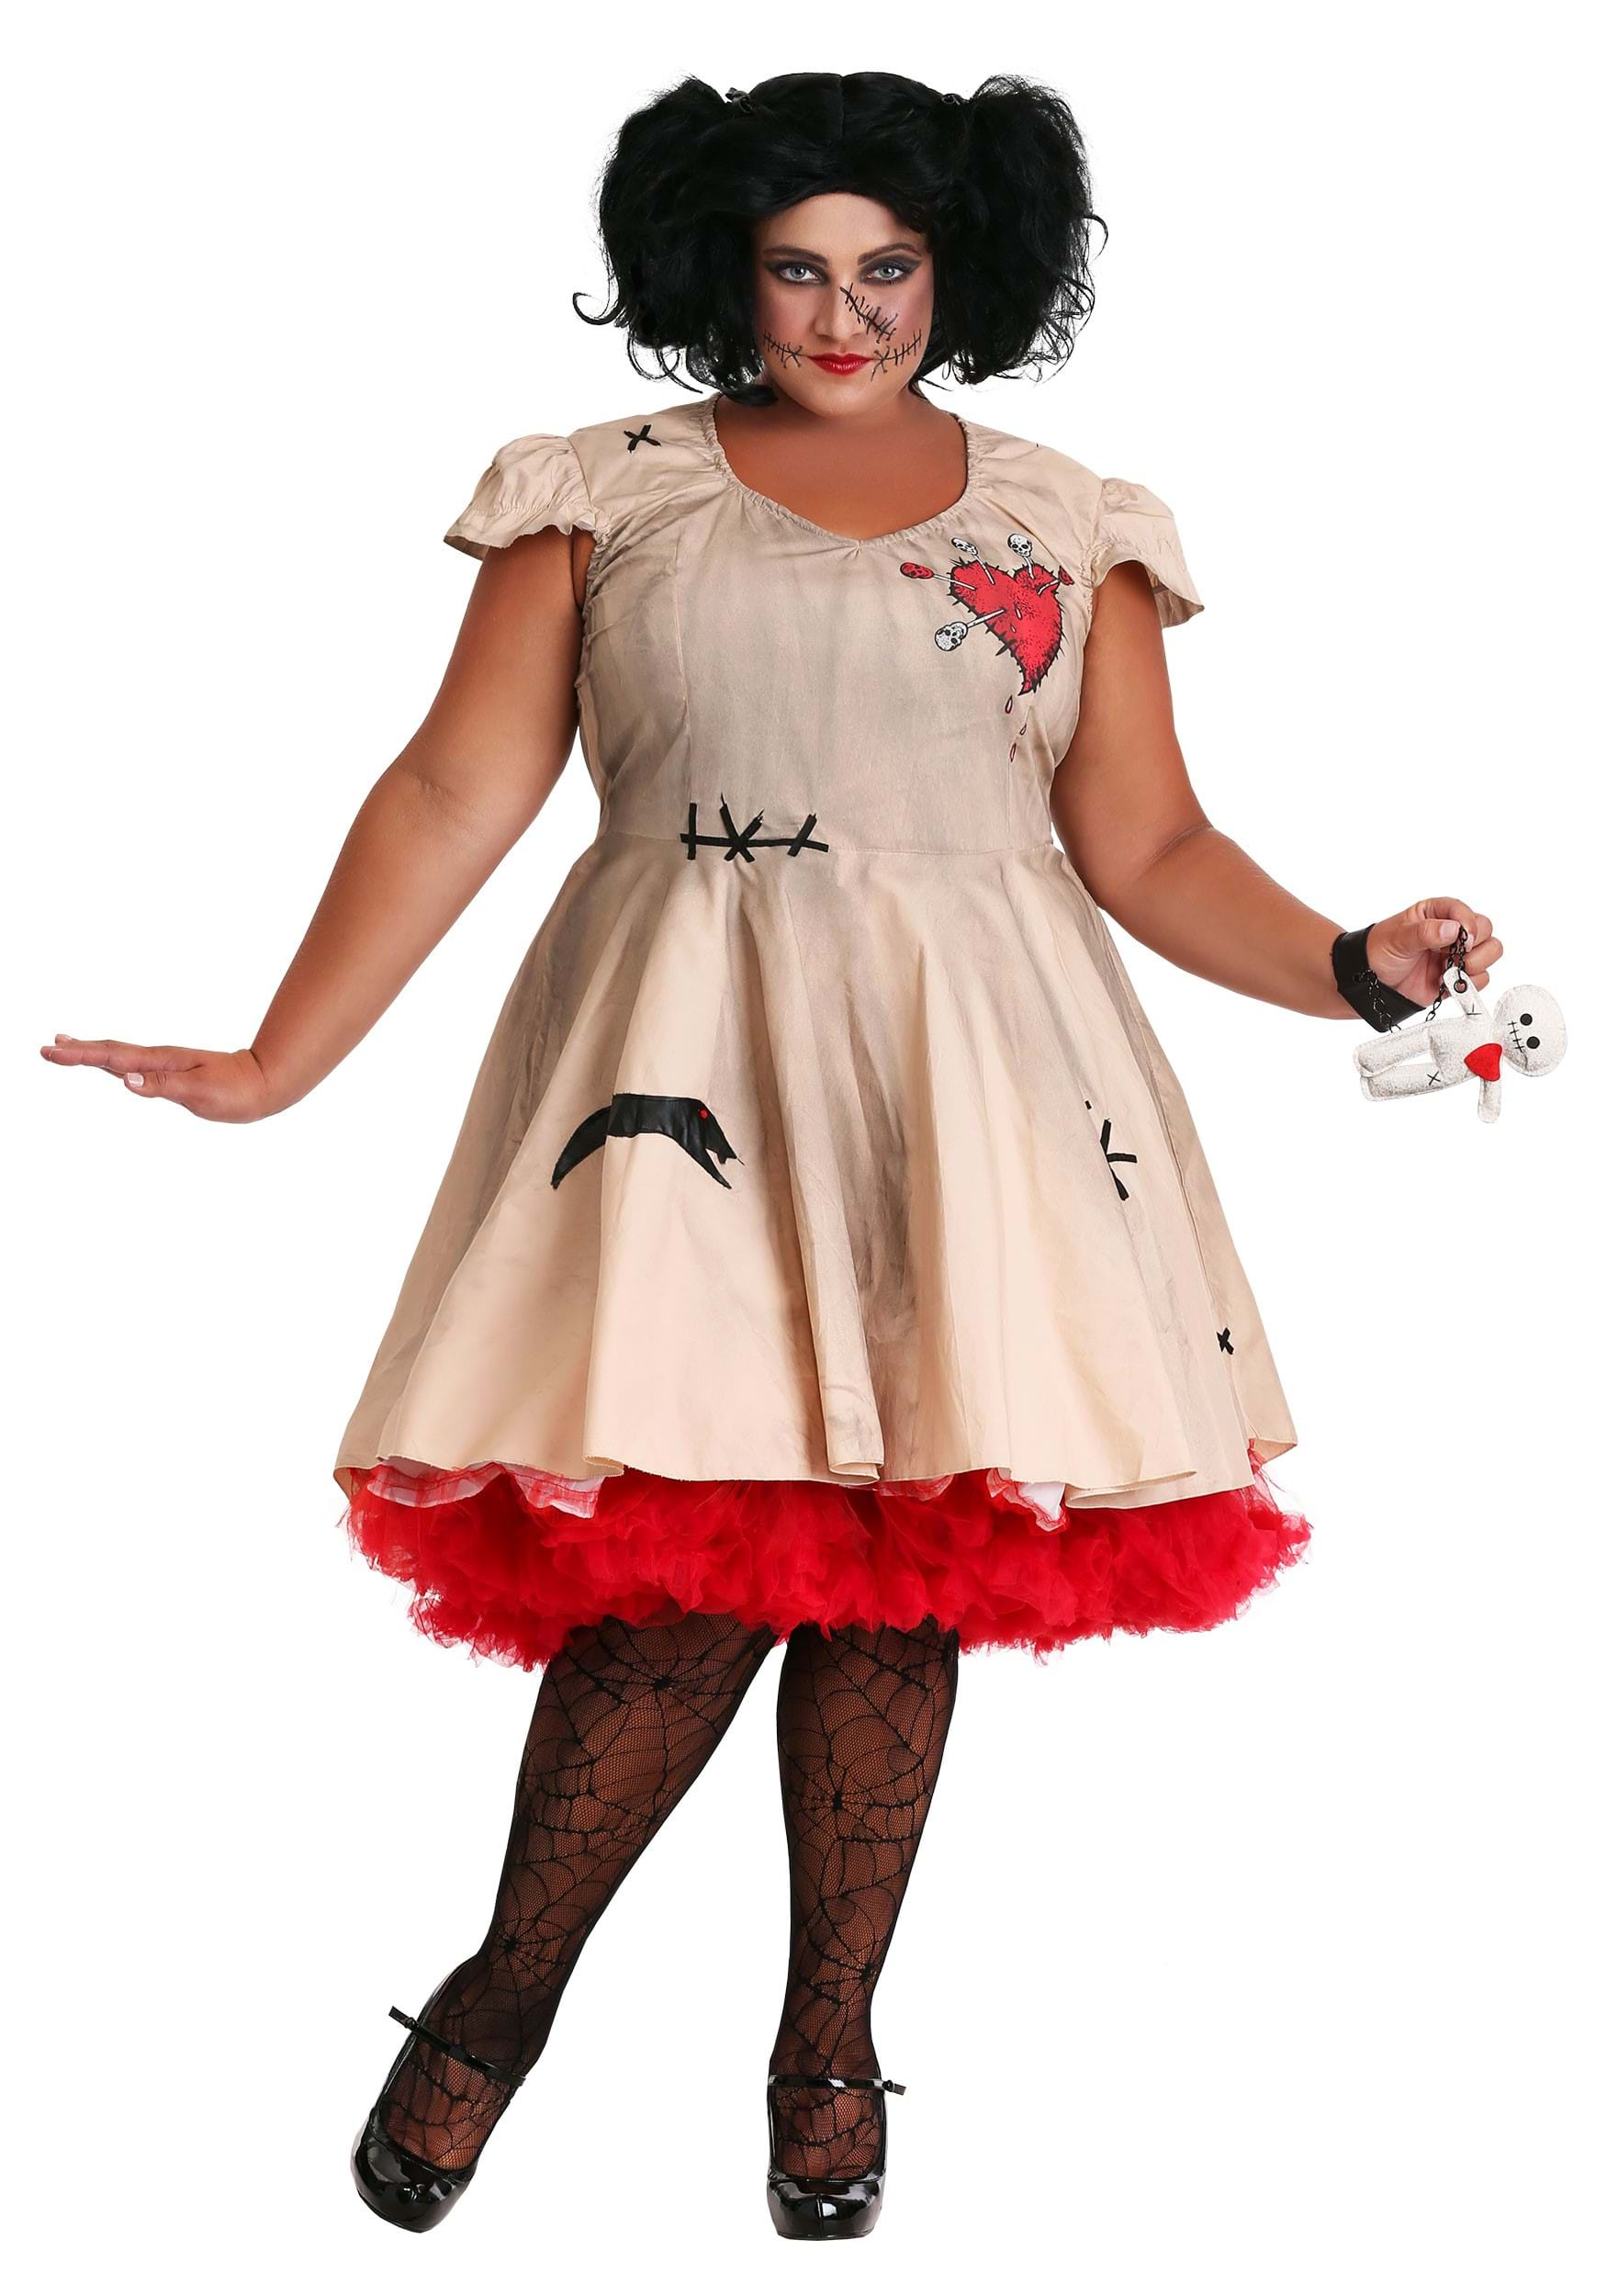 Halloween dress images